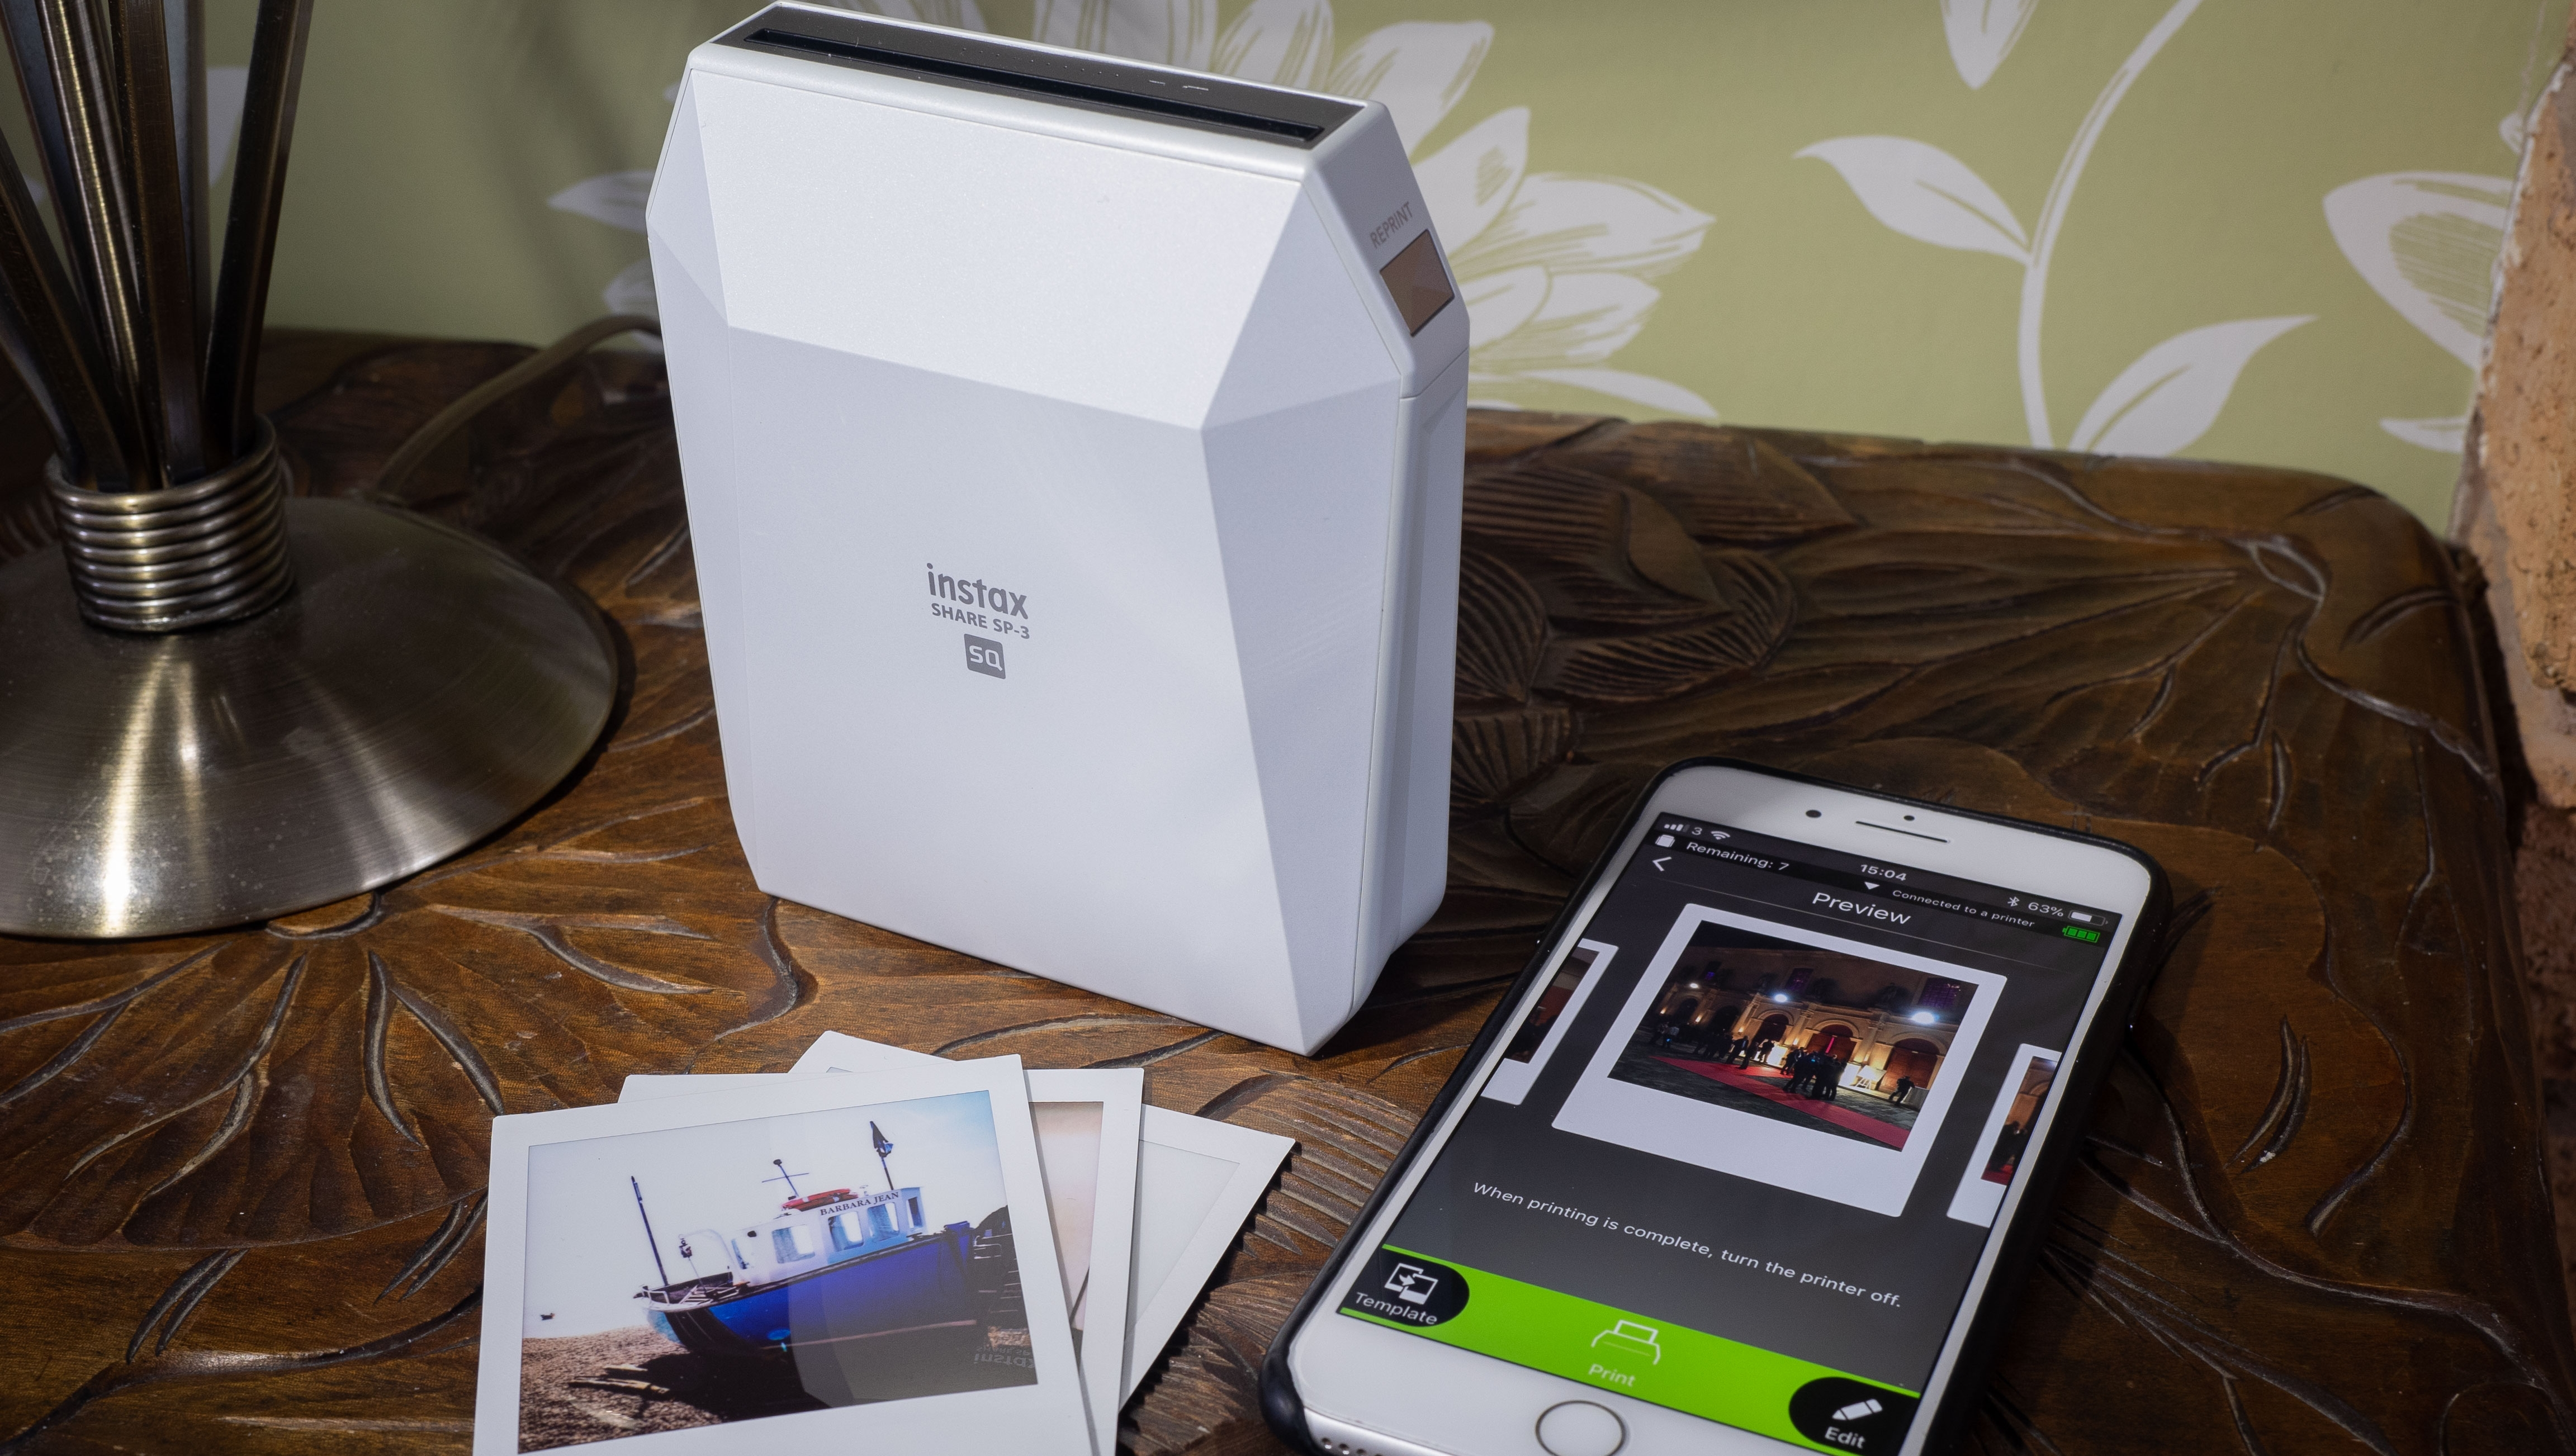 Best photo printer for iphone 2020